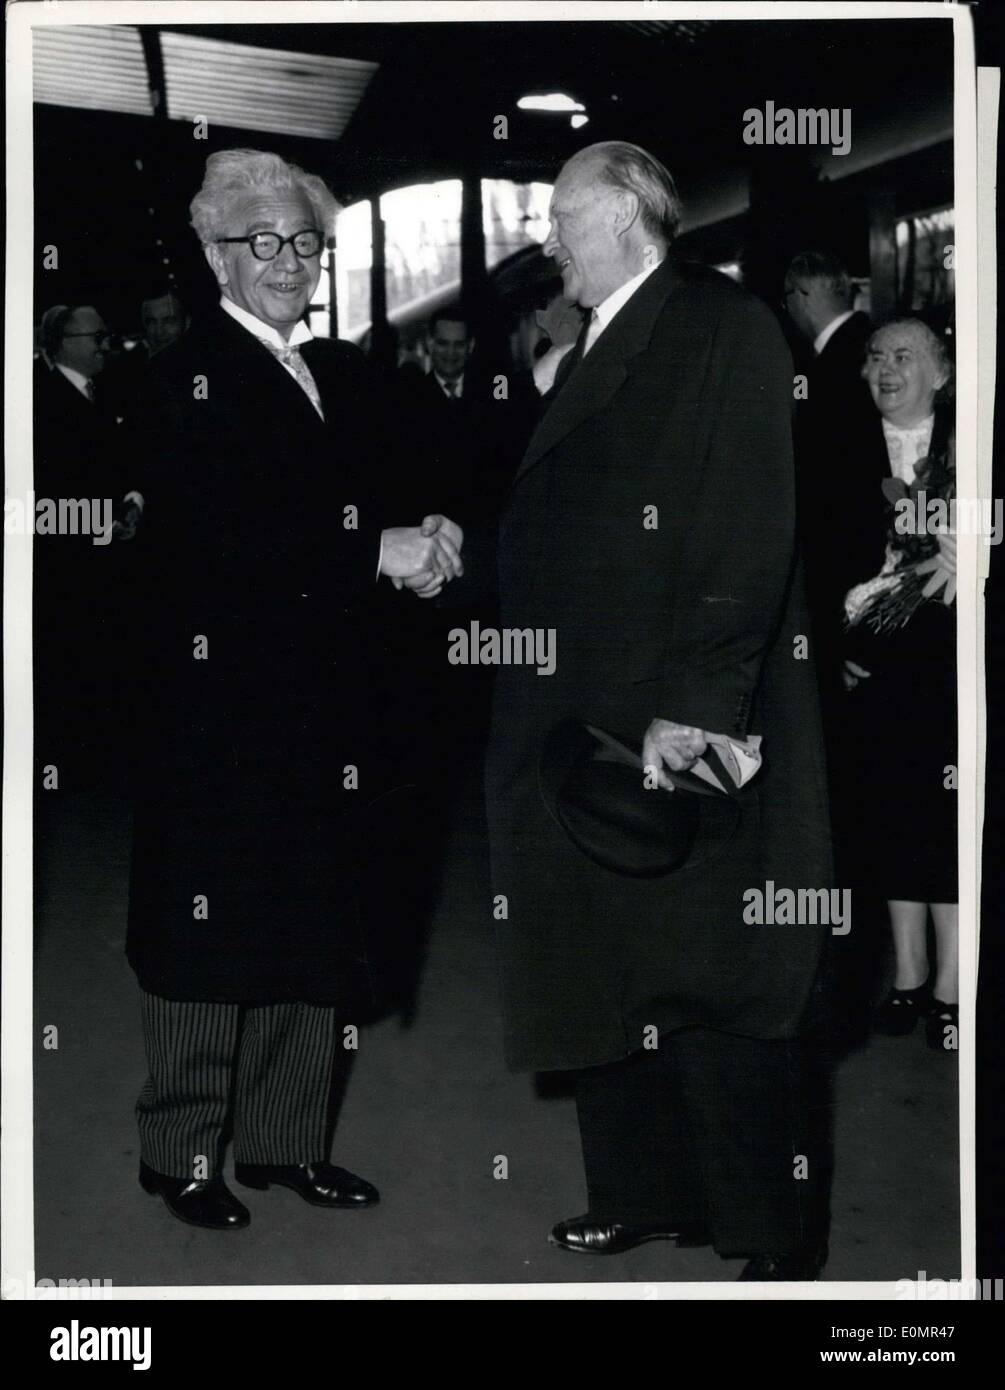 May 07, 1956 - Icelandic state-visit in Germany.. On Monday mid-morning Icelandic Prime Minister Olafur Thors and Icelandic Foreign Minister Dr. Kristinn Gudmundsson arrived at the main station in Bonn and were greeted by Chancellor Dr. Adenauer. The Icelandic guests will lead talks in Bonn during their four day stay in the country, as well as visit electric and steel plants in the Ruhr region and a winery in R?desheim. Pictured: At Bonn Station: Prime Minister Thors and Chancellor Dr. Adenauer. - Stock Image